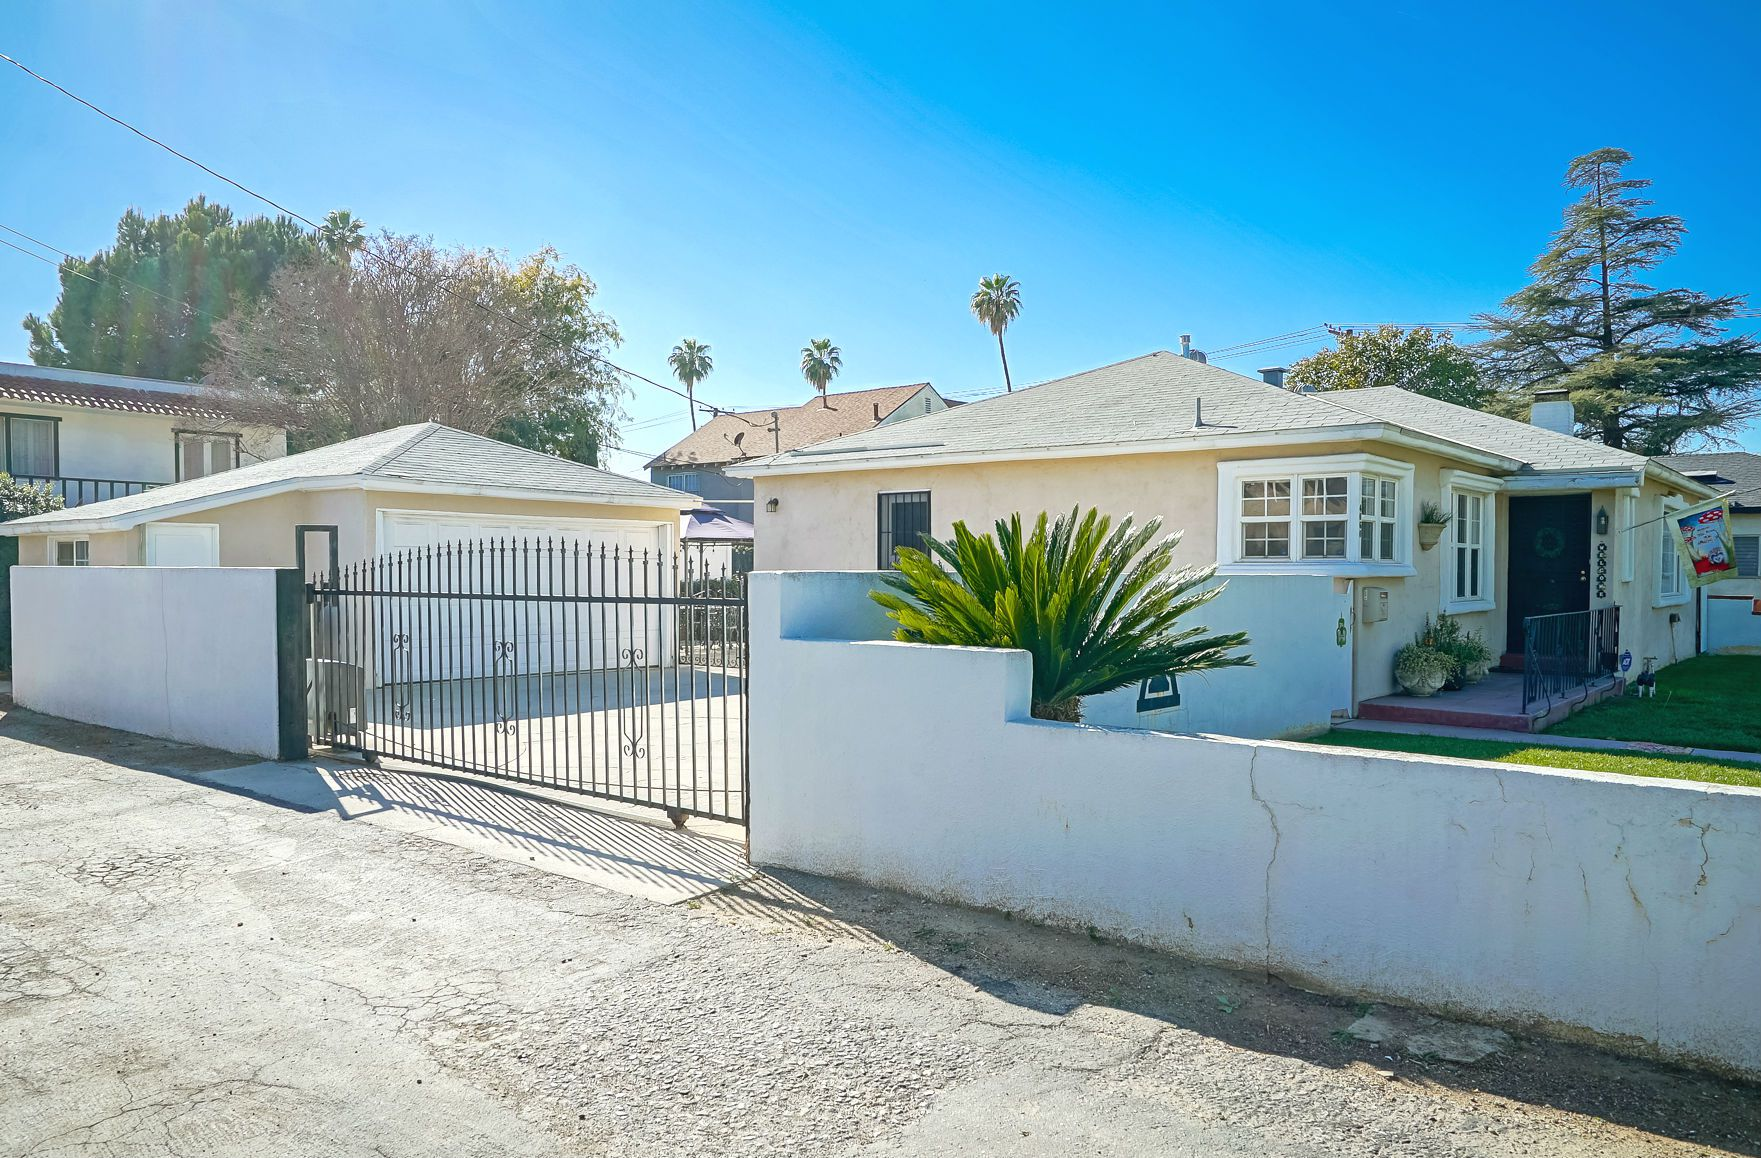 2-car detached garage with extra storage room, behind automatic driveway gate.